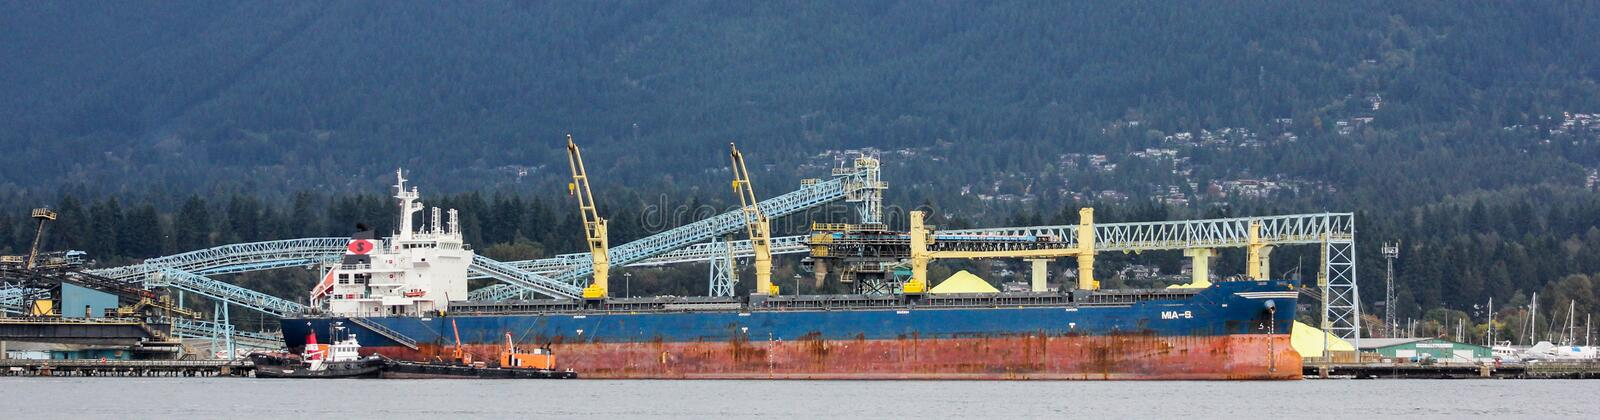 Tanker ship in Vancouver harbour. stock photography